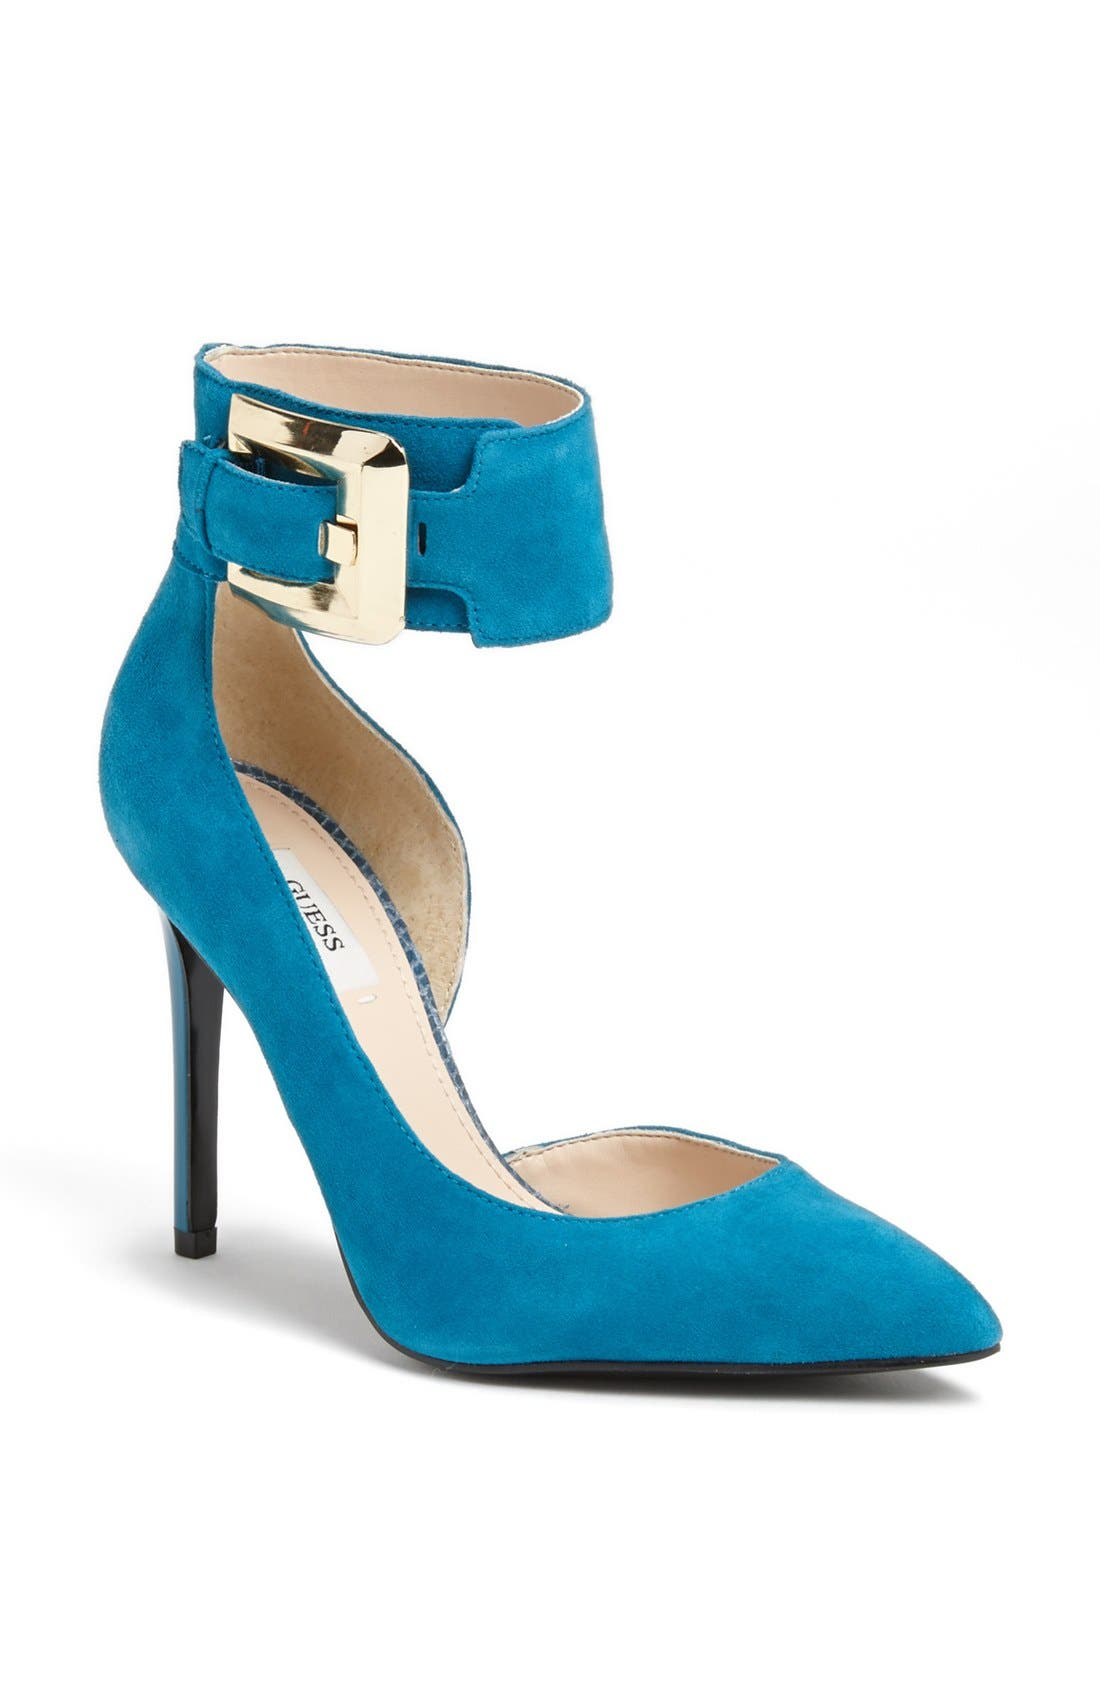 Alternate Image 1 Selected - GUESS 'Adal' Ankle Strap d'Orsay Pump